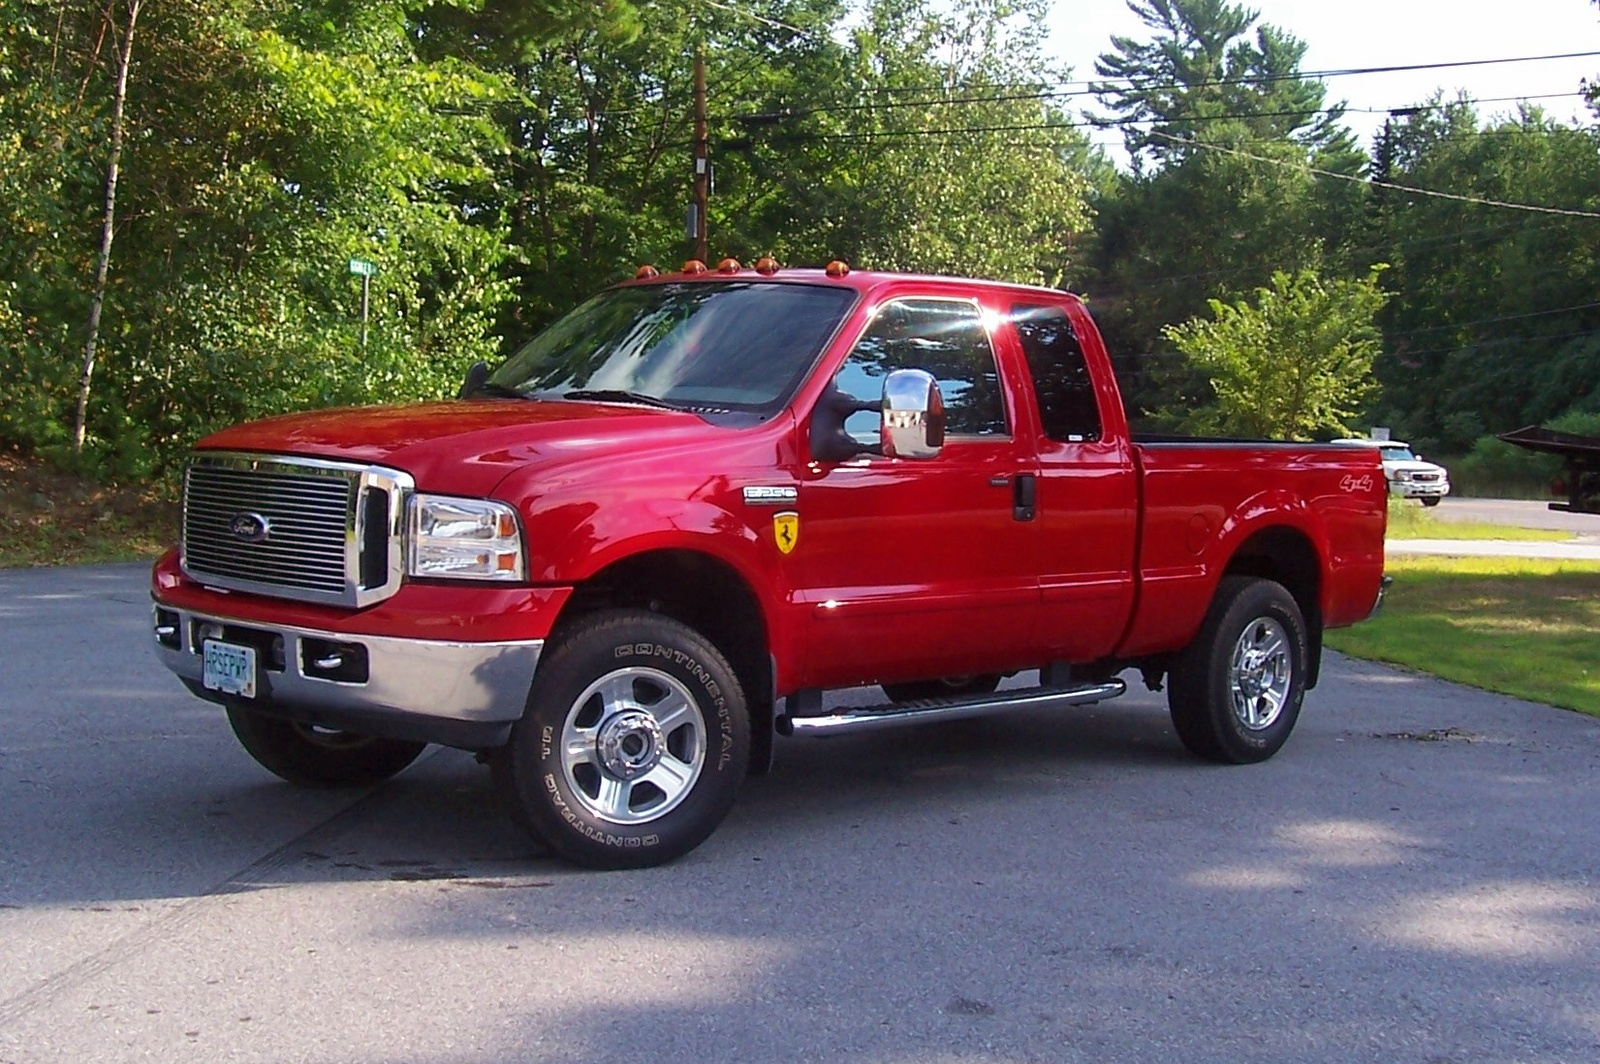 2006 Ford F-250 Super Duty #3